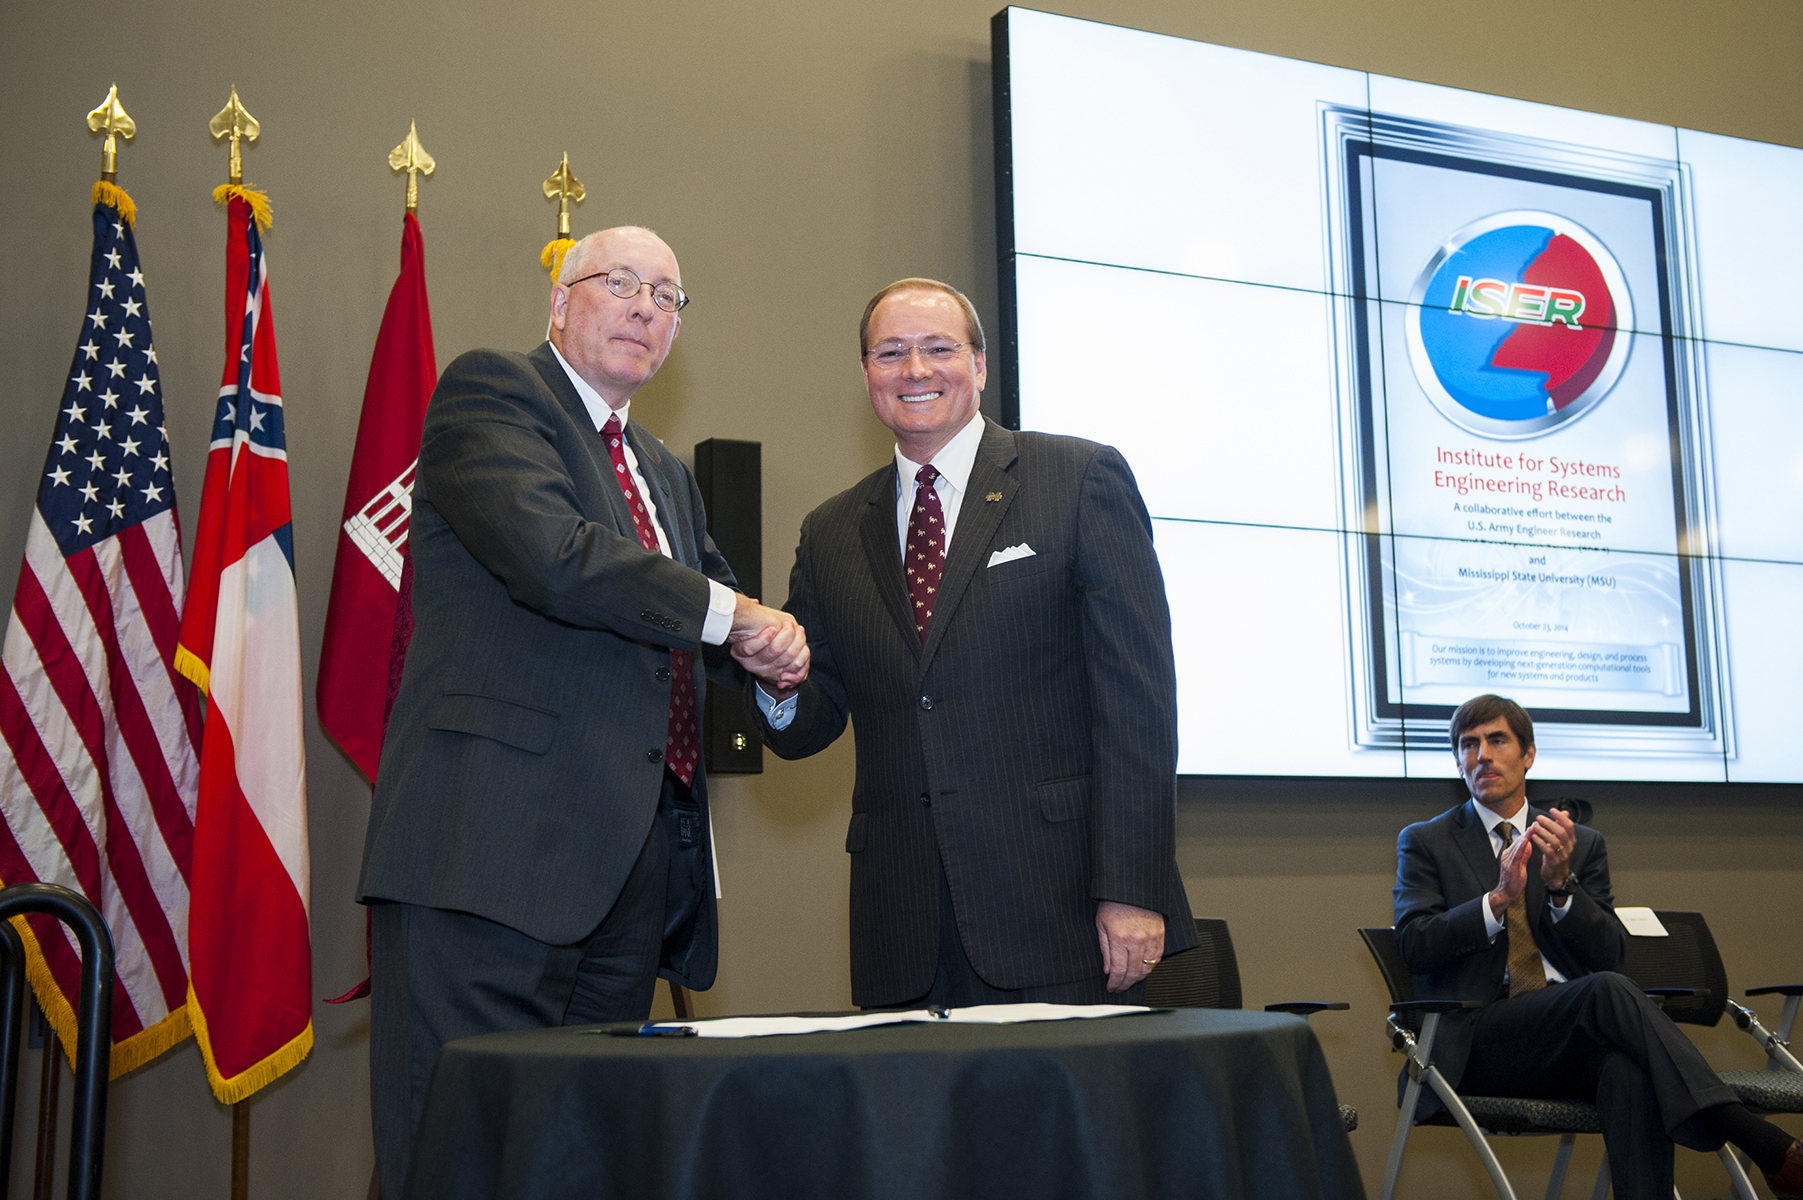 Jeffery P. Holland (l-r), director of the U.S. Army's Engineer Research and Development Center in Vicksburg, and MSU President Mark E. Keenum celebrate the signing of an agreement establishing the Institute for Systems Engineering Research Thursday afternoon [Oct. 23]. The collaborative research initiative will create a hub to develop advanced systems that enhance existing industries, attract new jobs and bolster national defense capabilities.